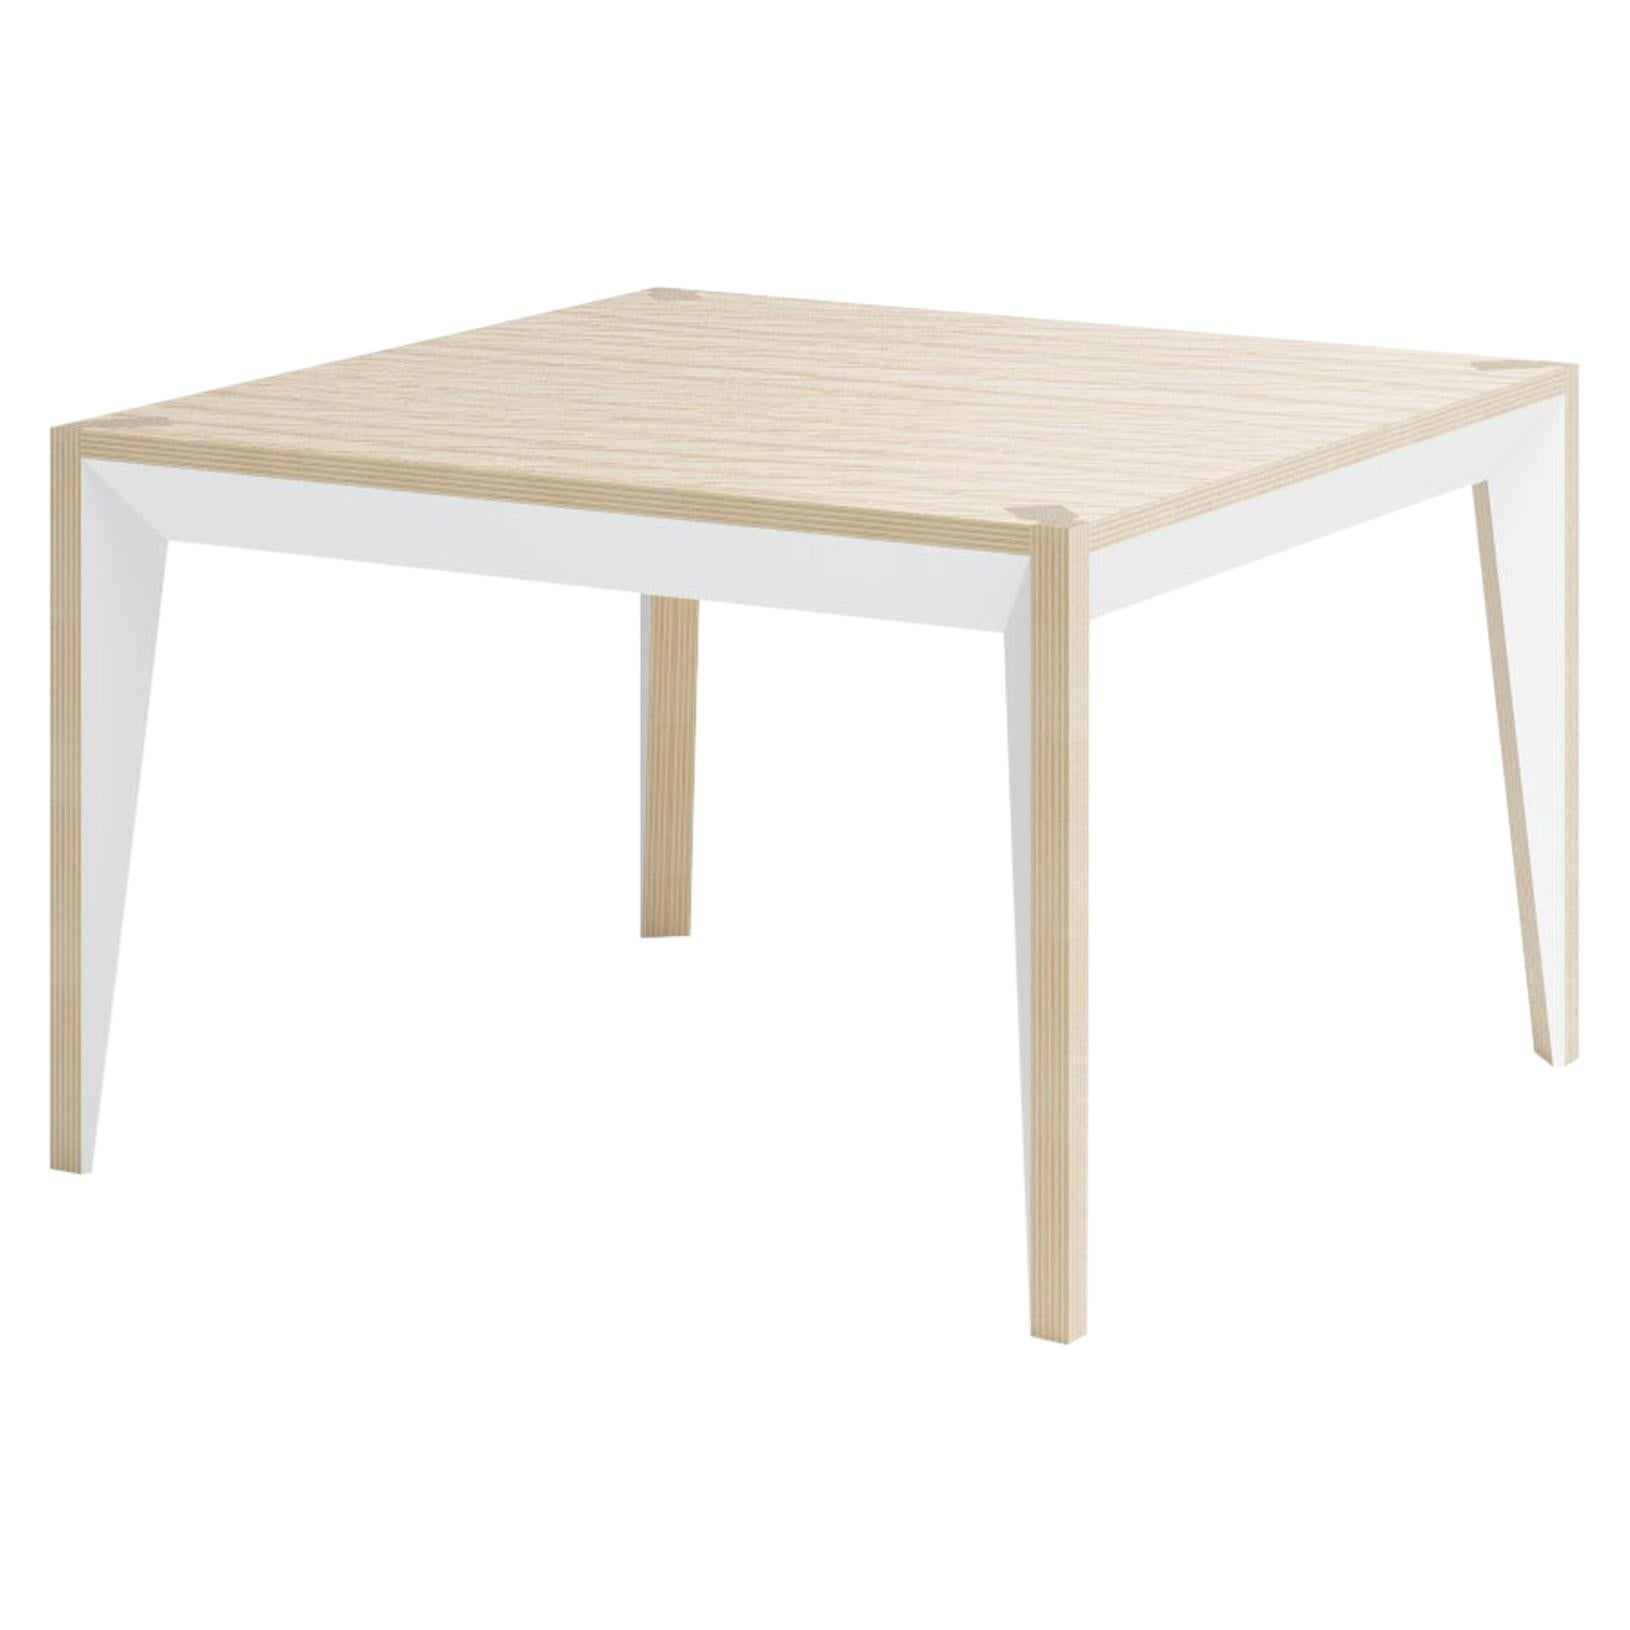 Oak White MiMi Square Coffee Table by Miduny, Made in Italy